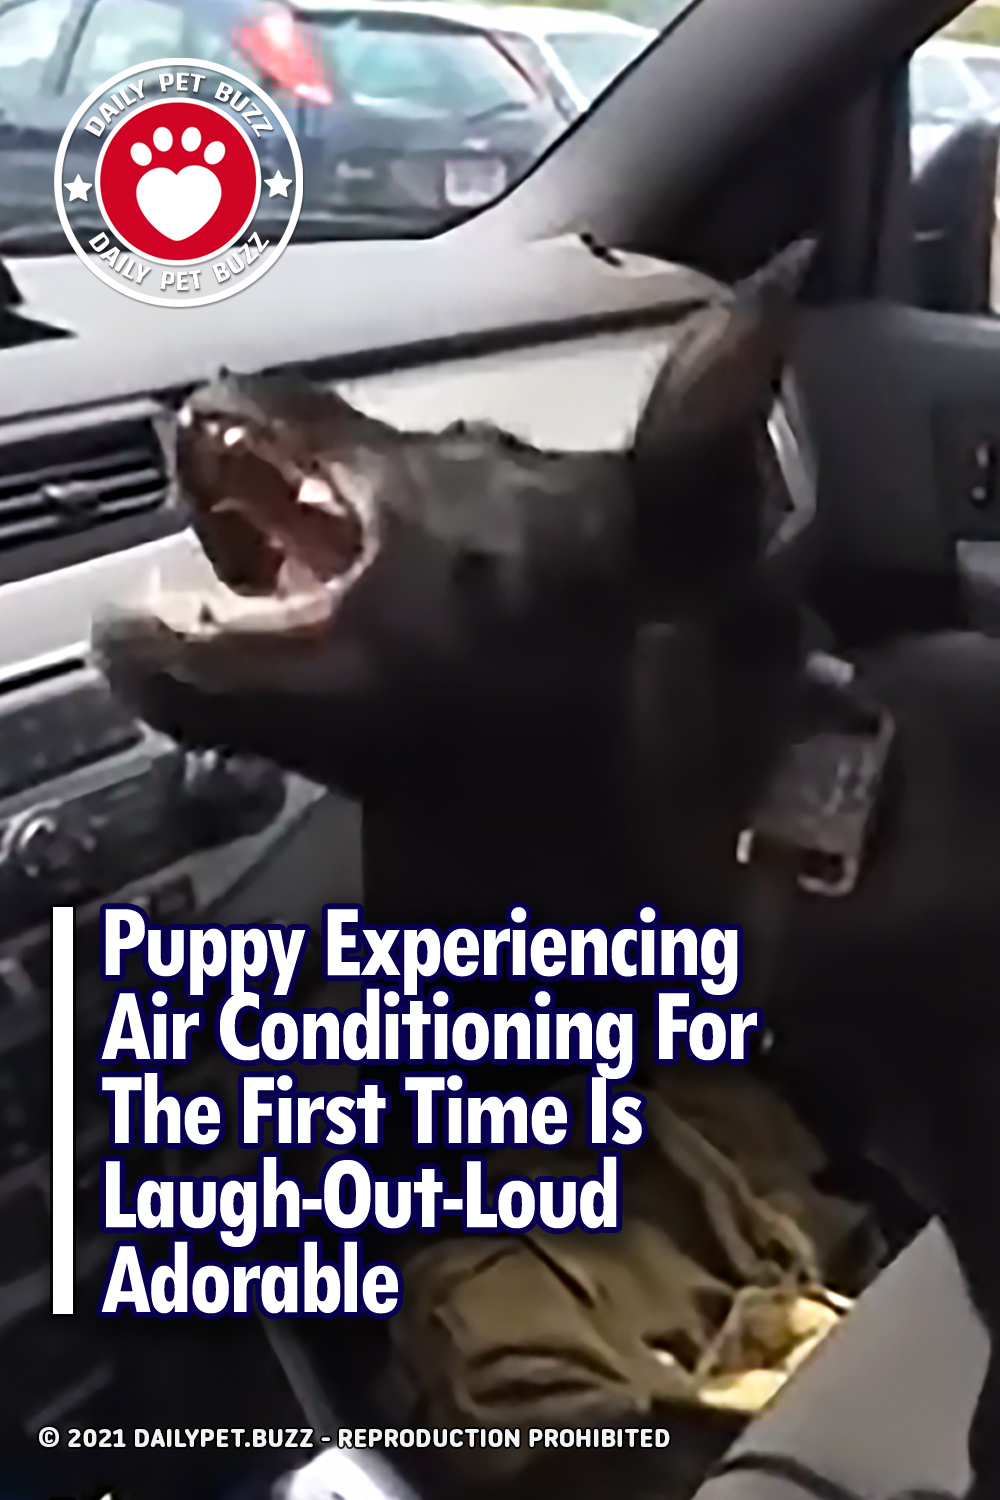 Puppy Experiencing Air Conditioning For The First Time Is Laugh-Out-Loud Adorable